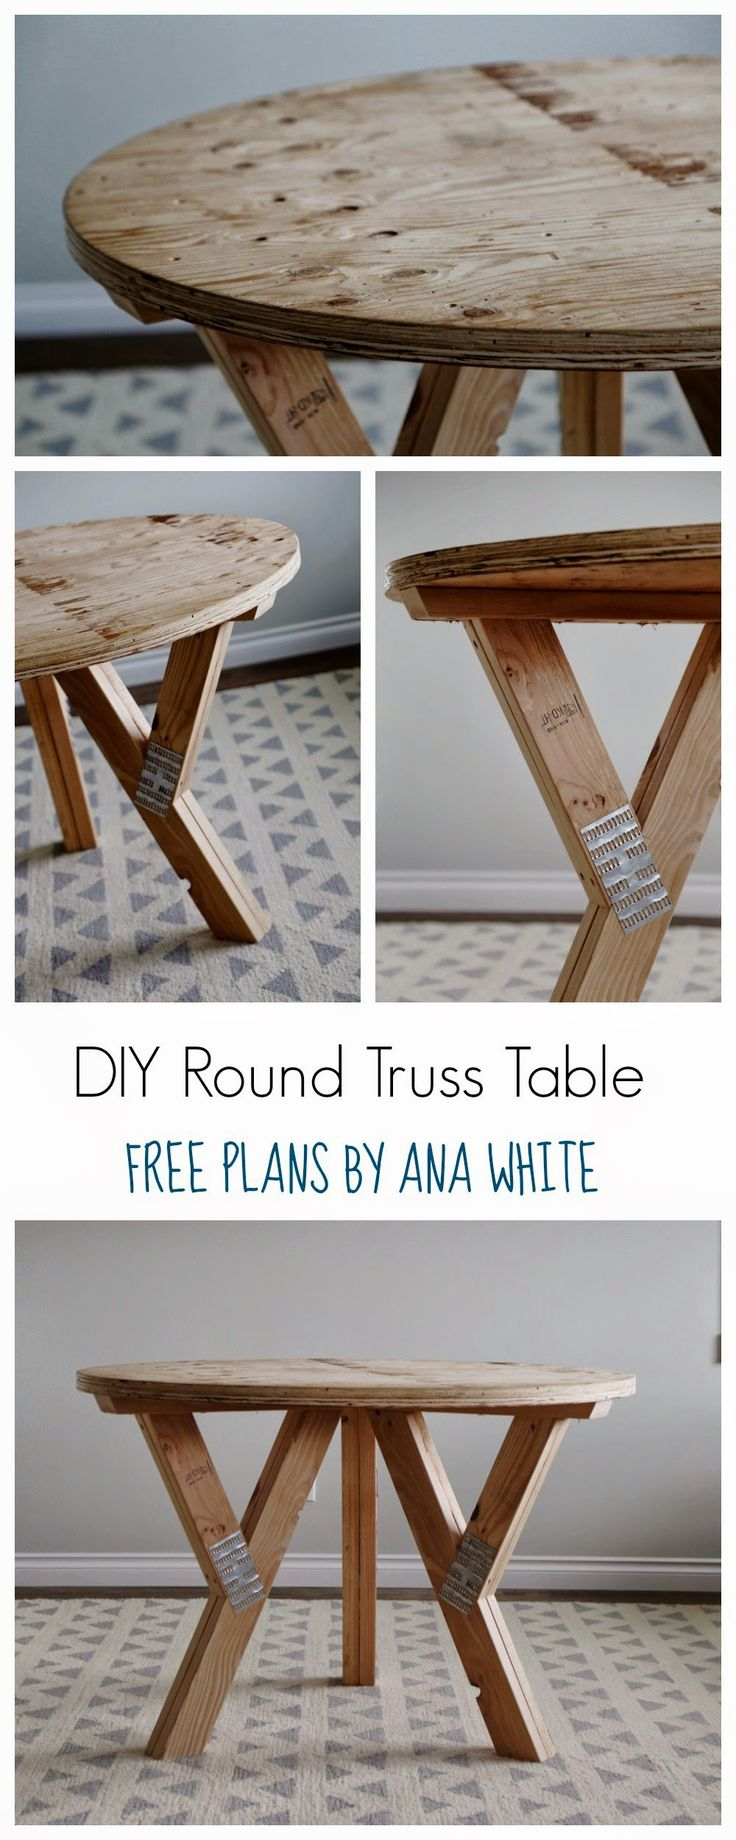 Ana White | Build a Y Truss Round Table | Free and Easy DIY Project and